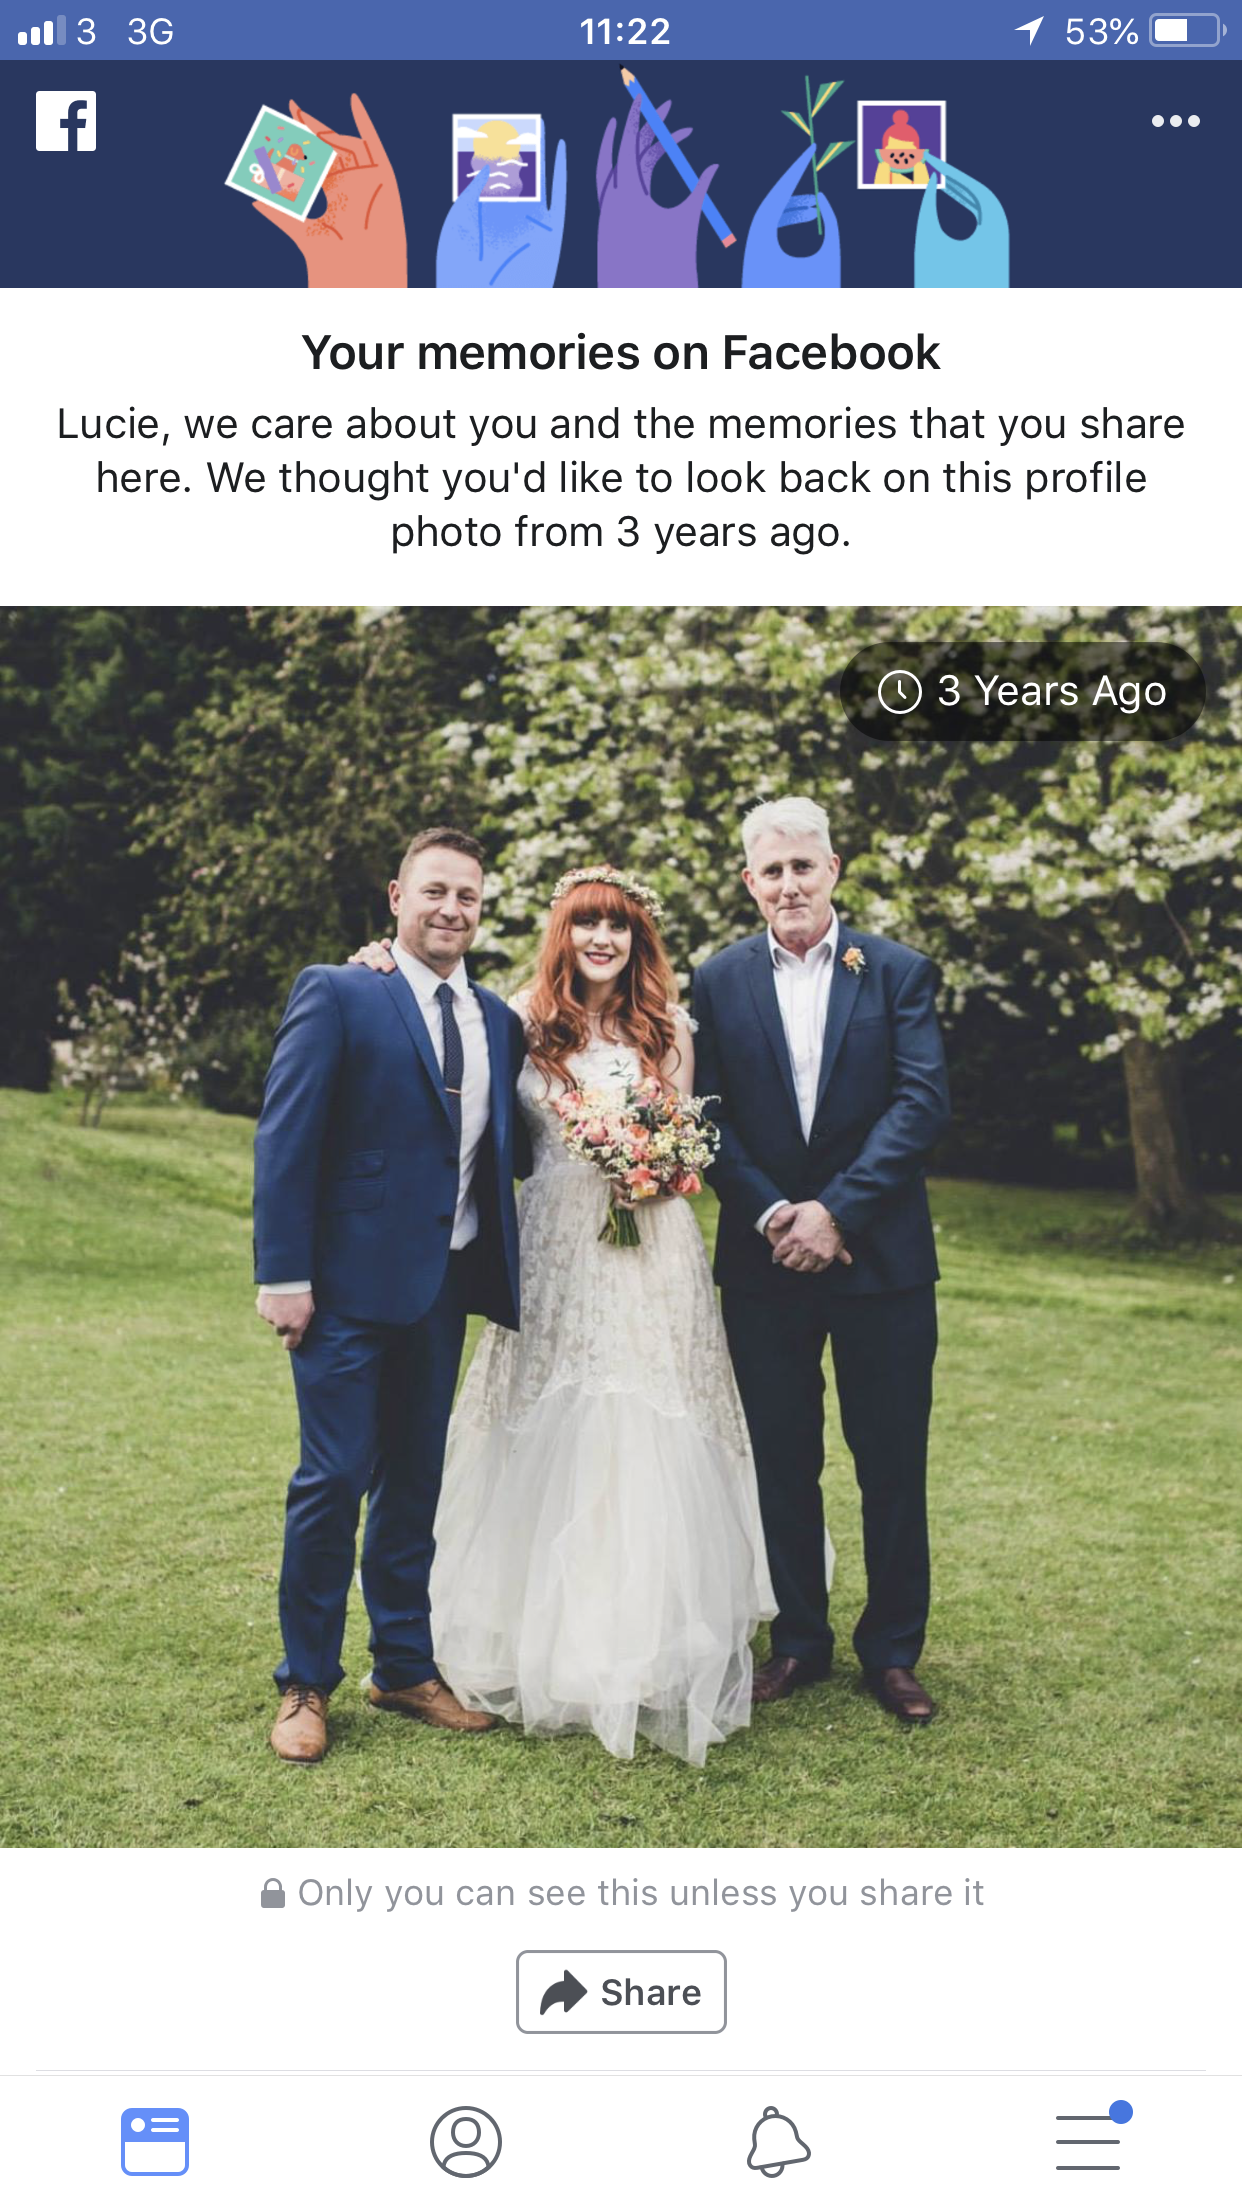 Oh Facebook memories... 🙇‍♀️ To be fair,  my wedding day  was one of the best days of my life. I feel incredibly grateful to have been standing in a room filled with so much love.